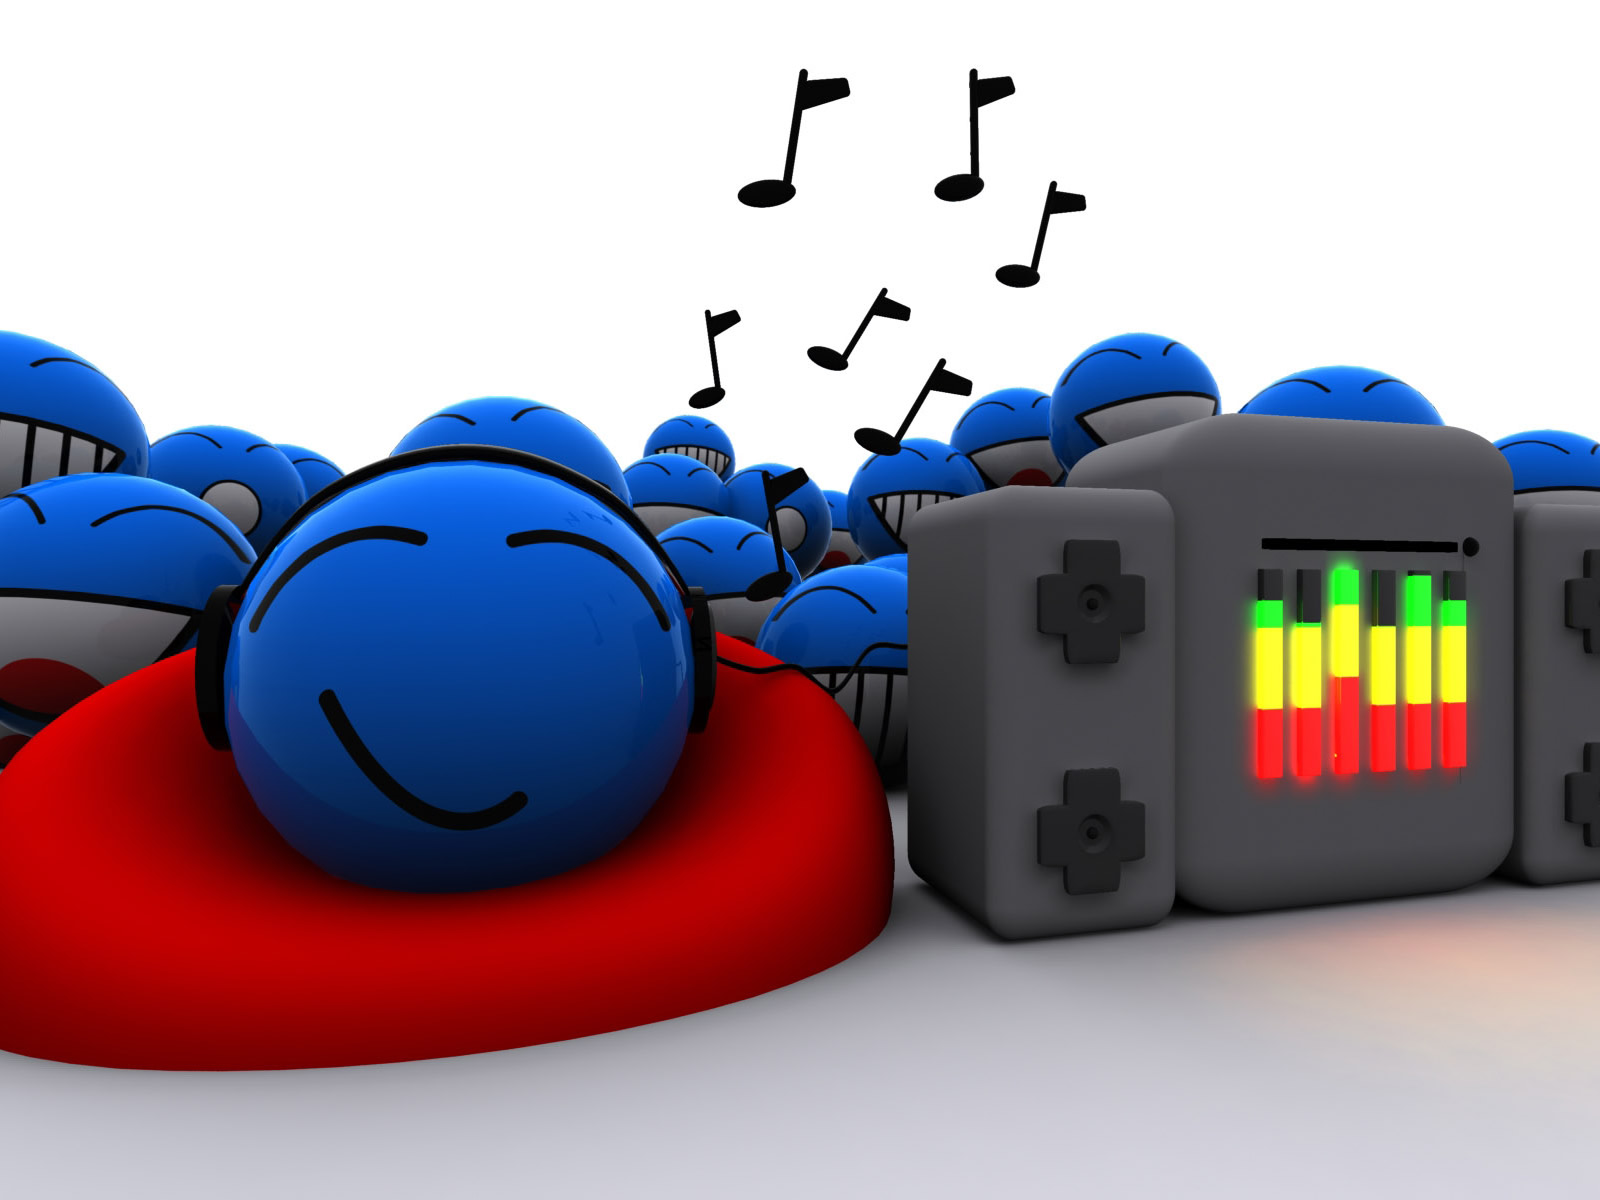 Smiley Full Hd Wallpaper And Achtergrond: 3D Achtergronden